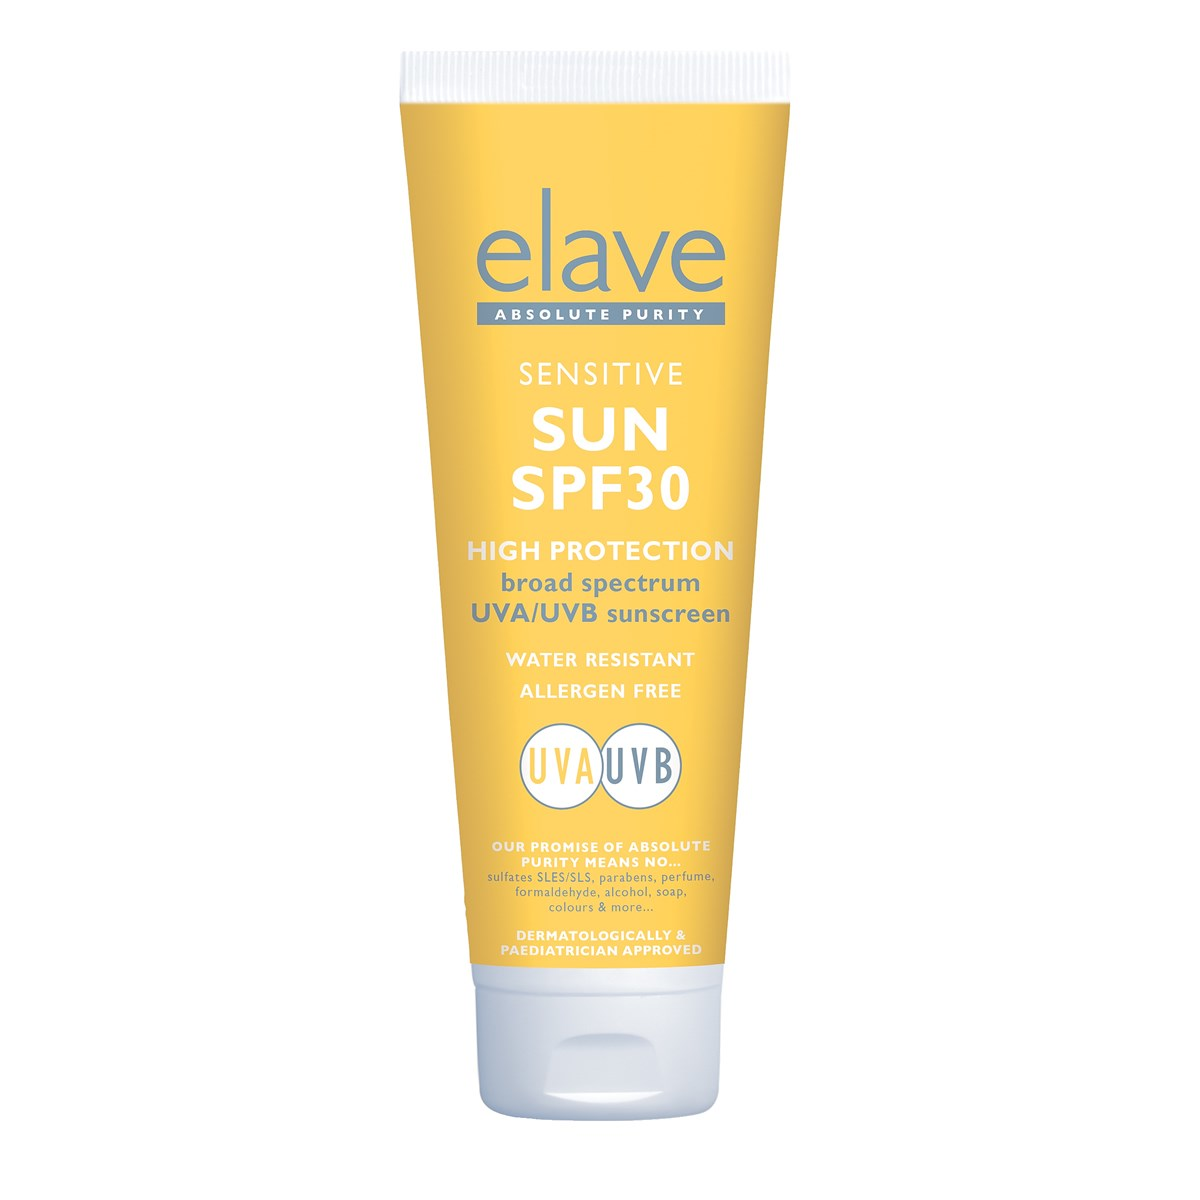 Elave Sensitive Sun Protection SPF30